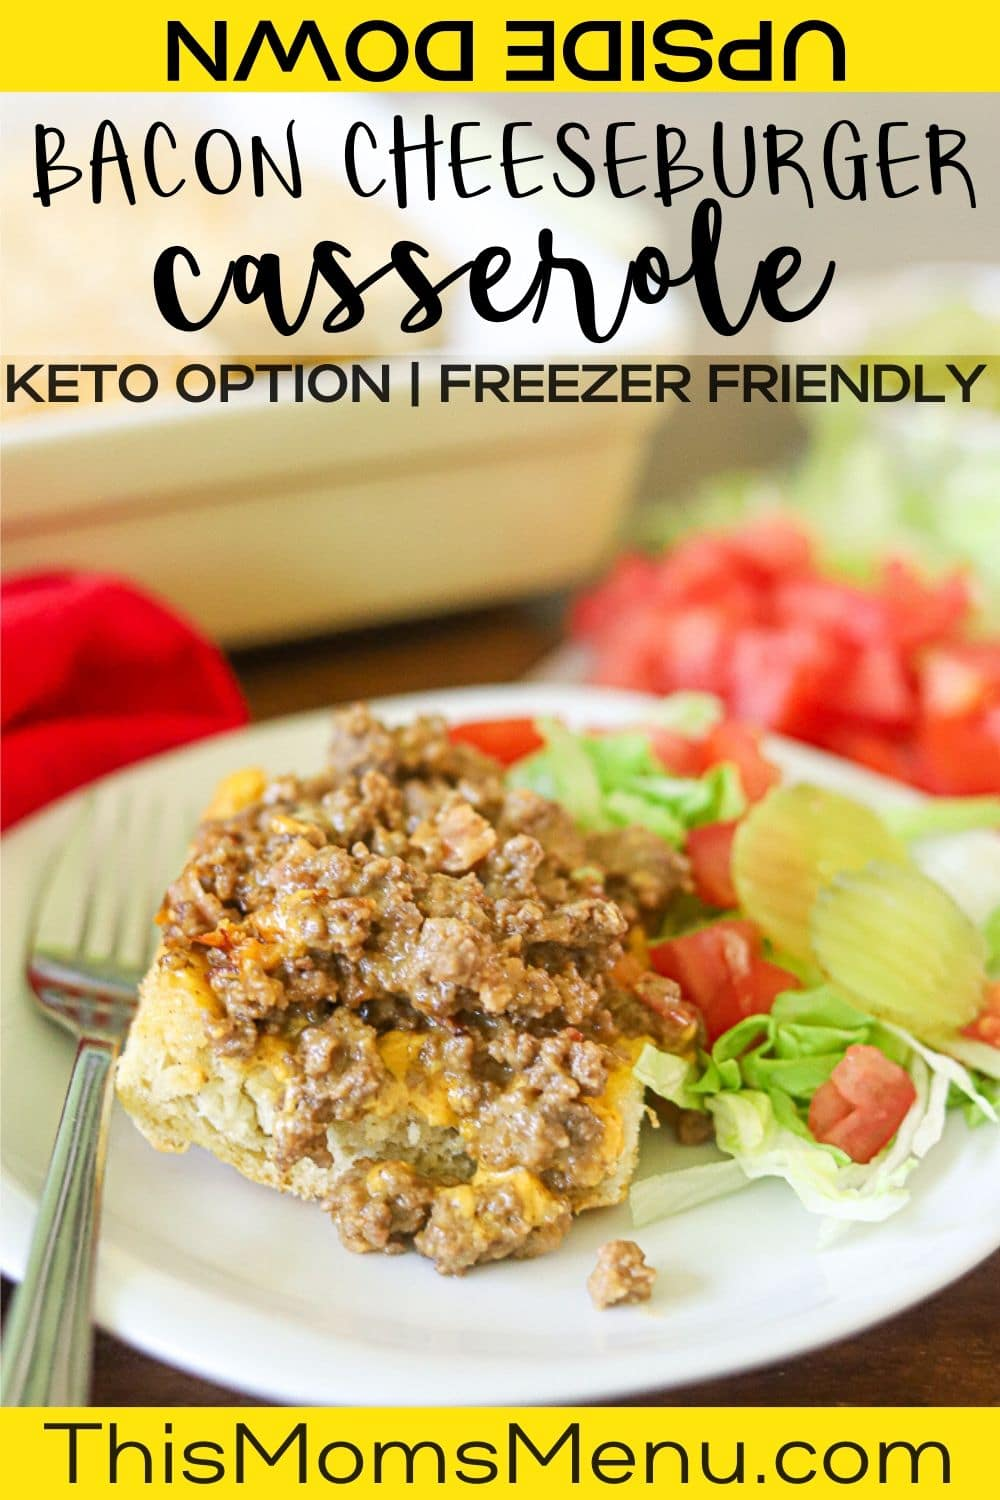 upside down bacon cheeseburger casserole with text overlay